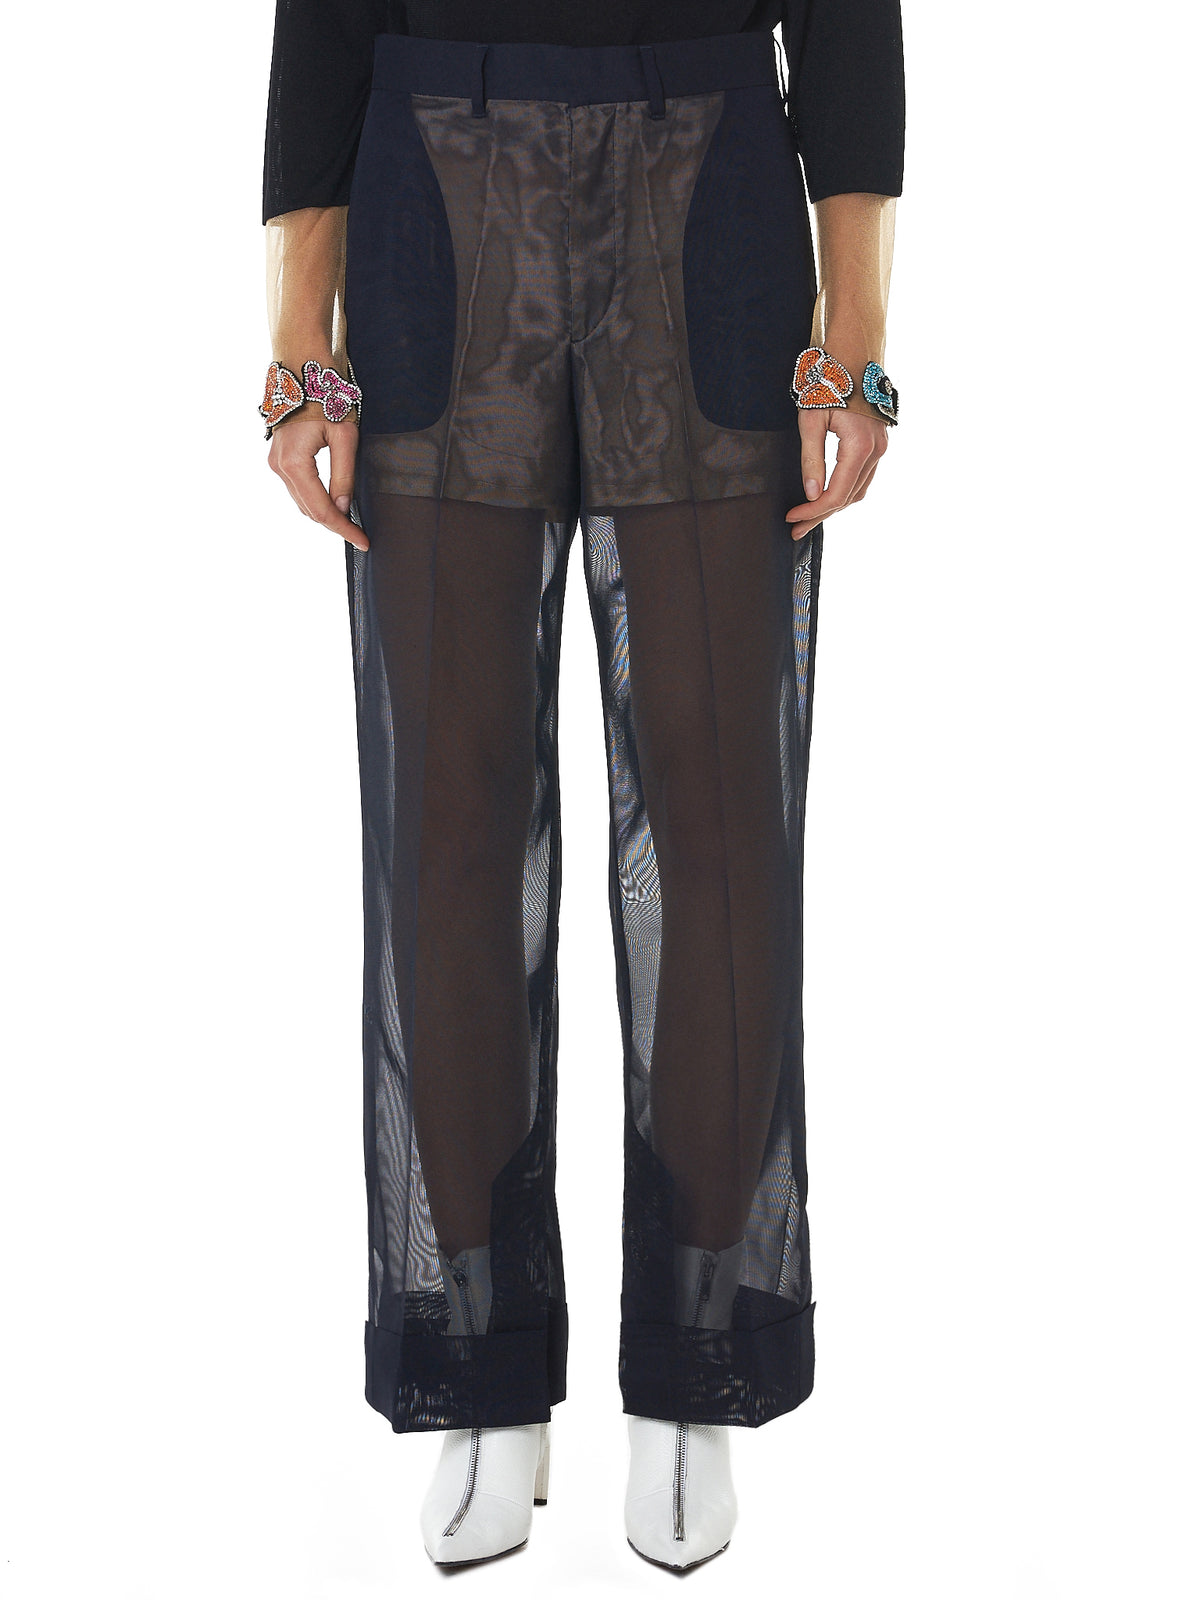 Toga Archives Darted Pant - Hlorenzo Front